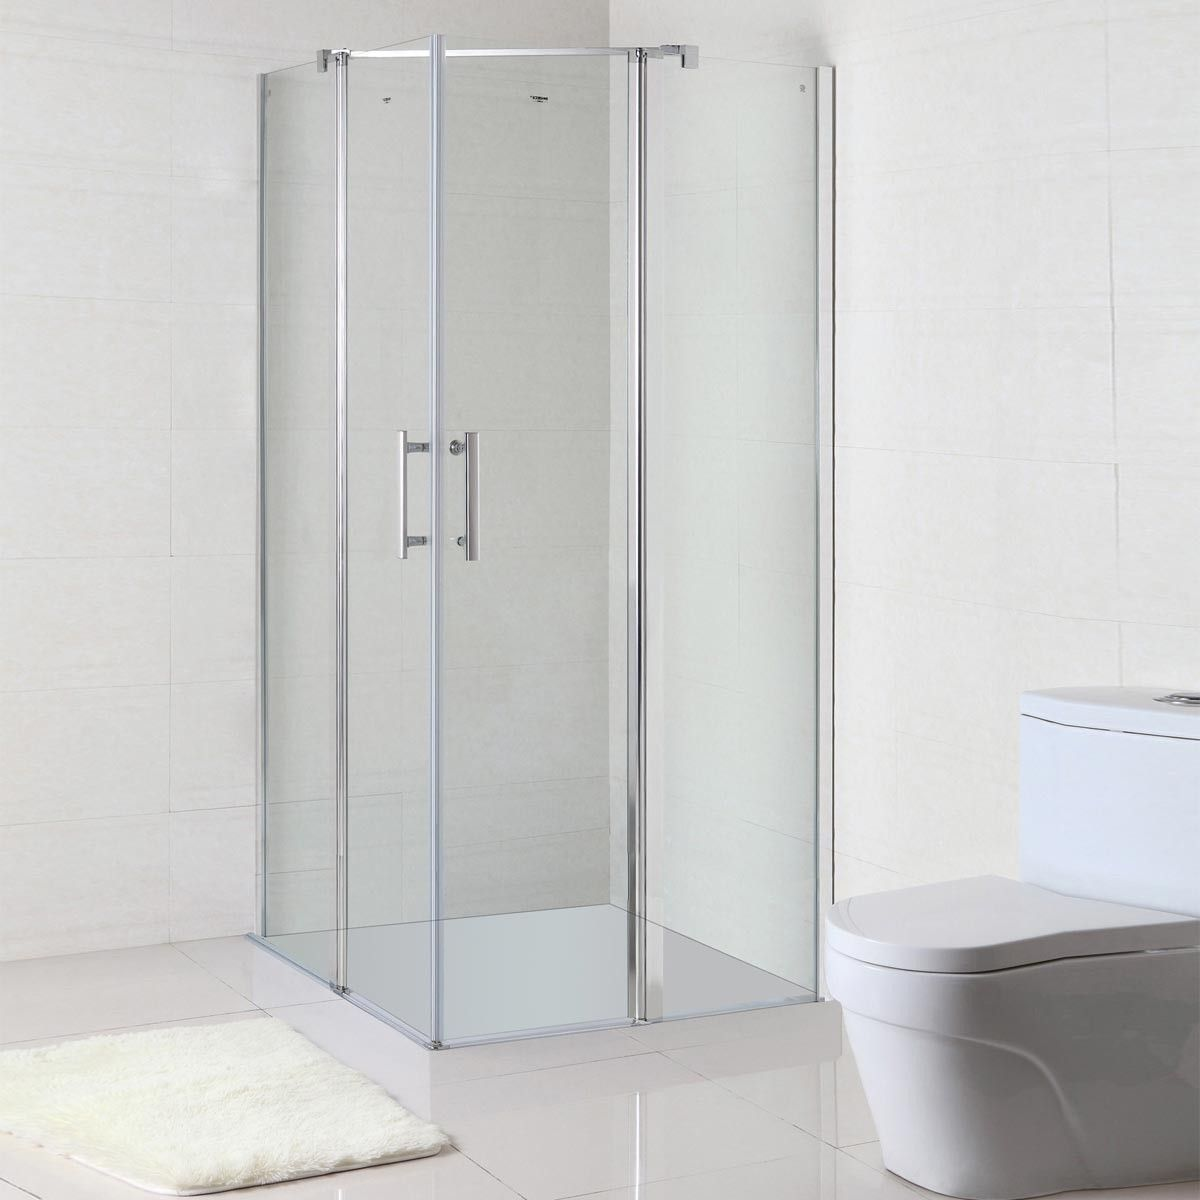 36 x 36 In. (90 x 90 cm) Clear Tempered Glass Shower Enclosure (WB-06)